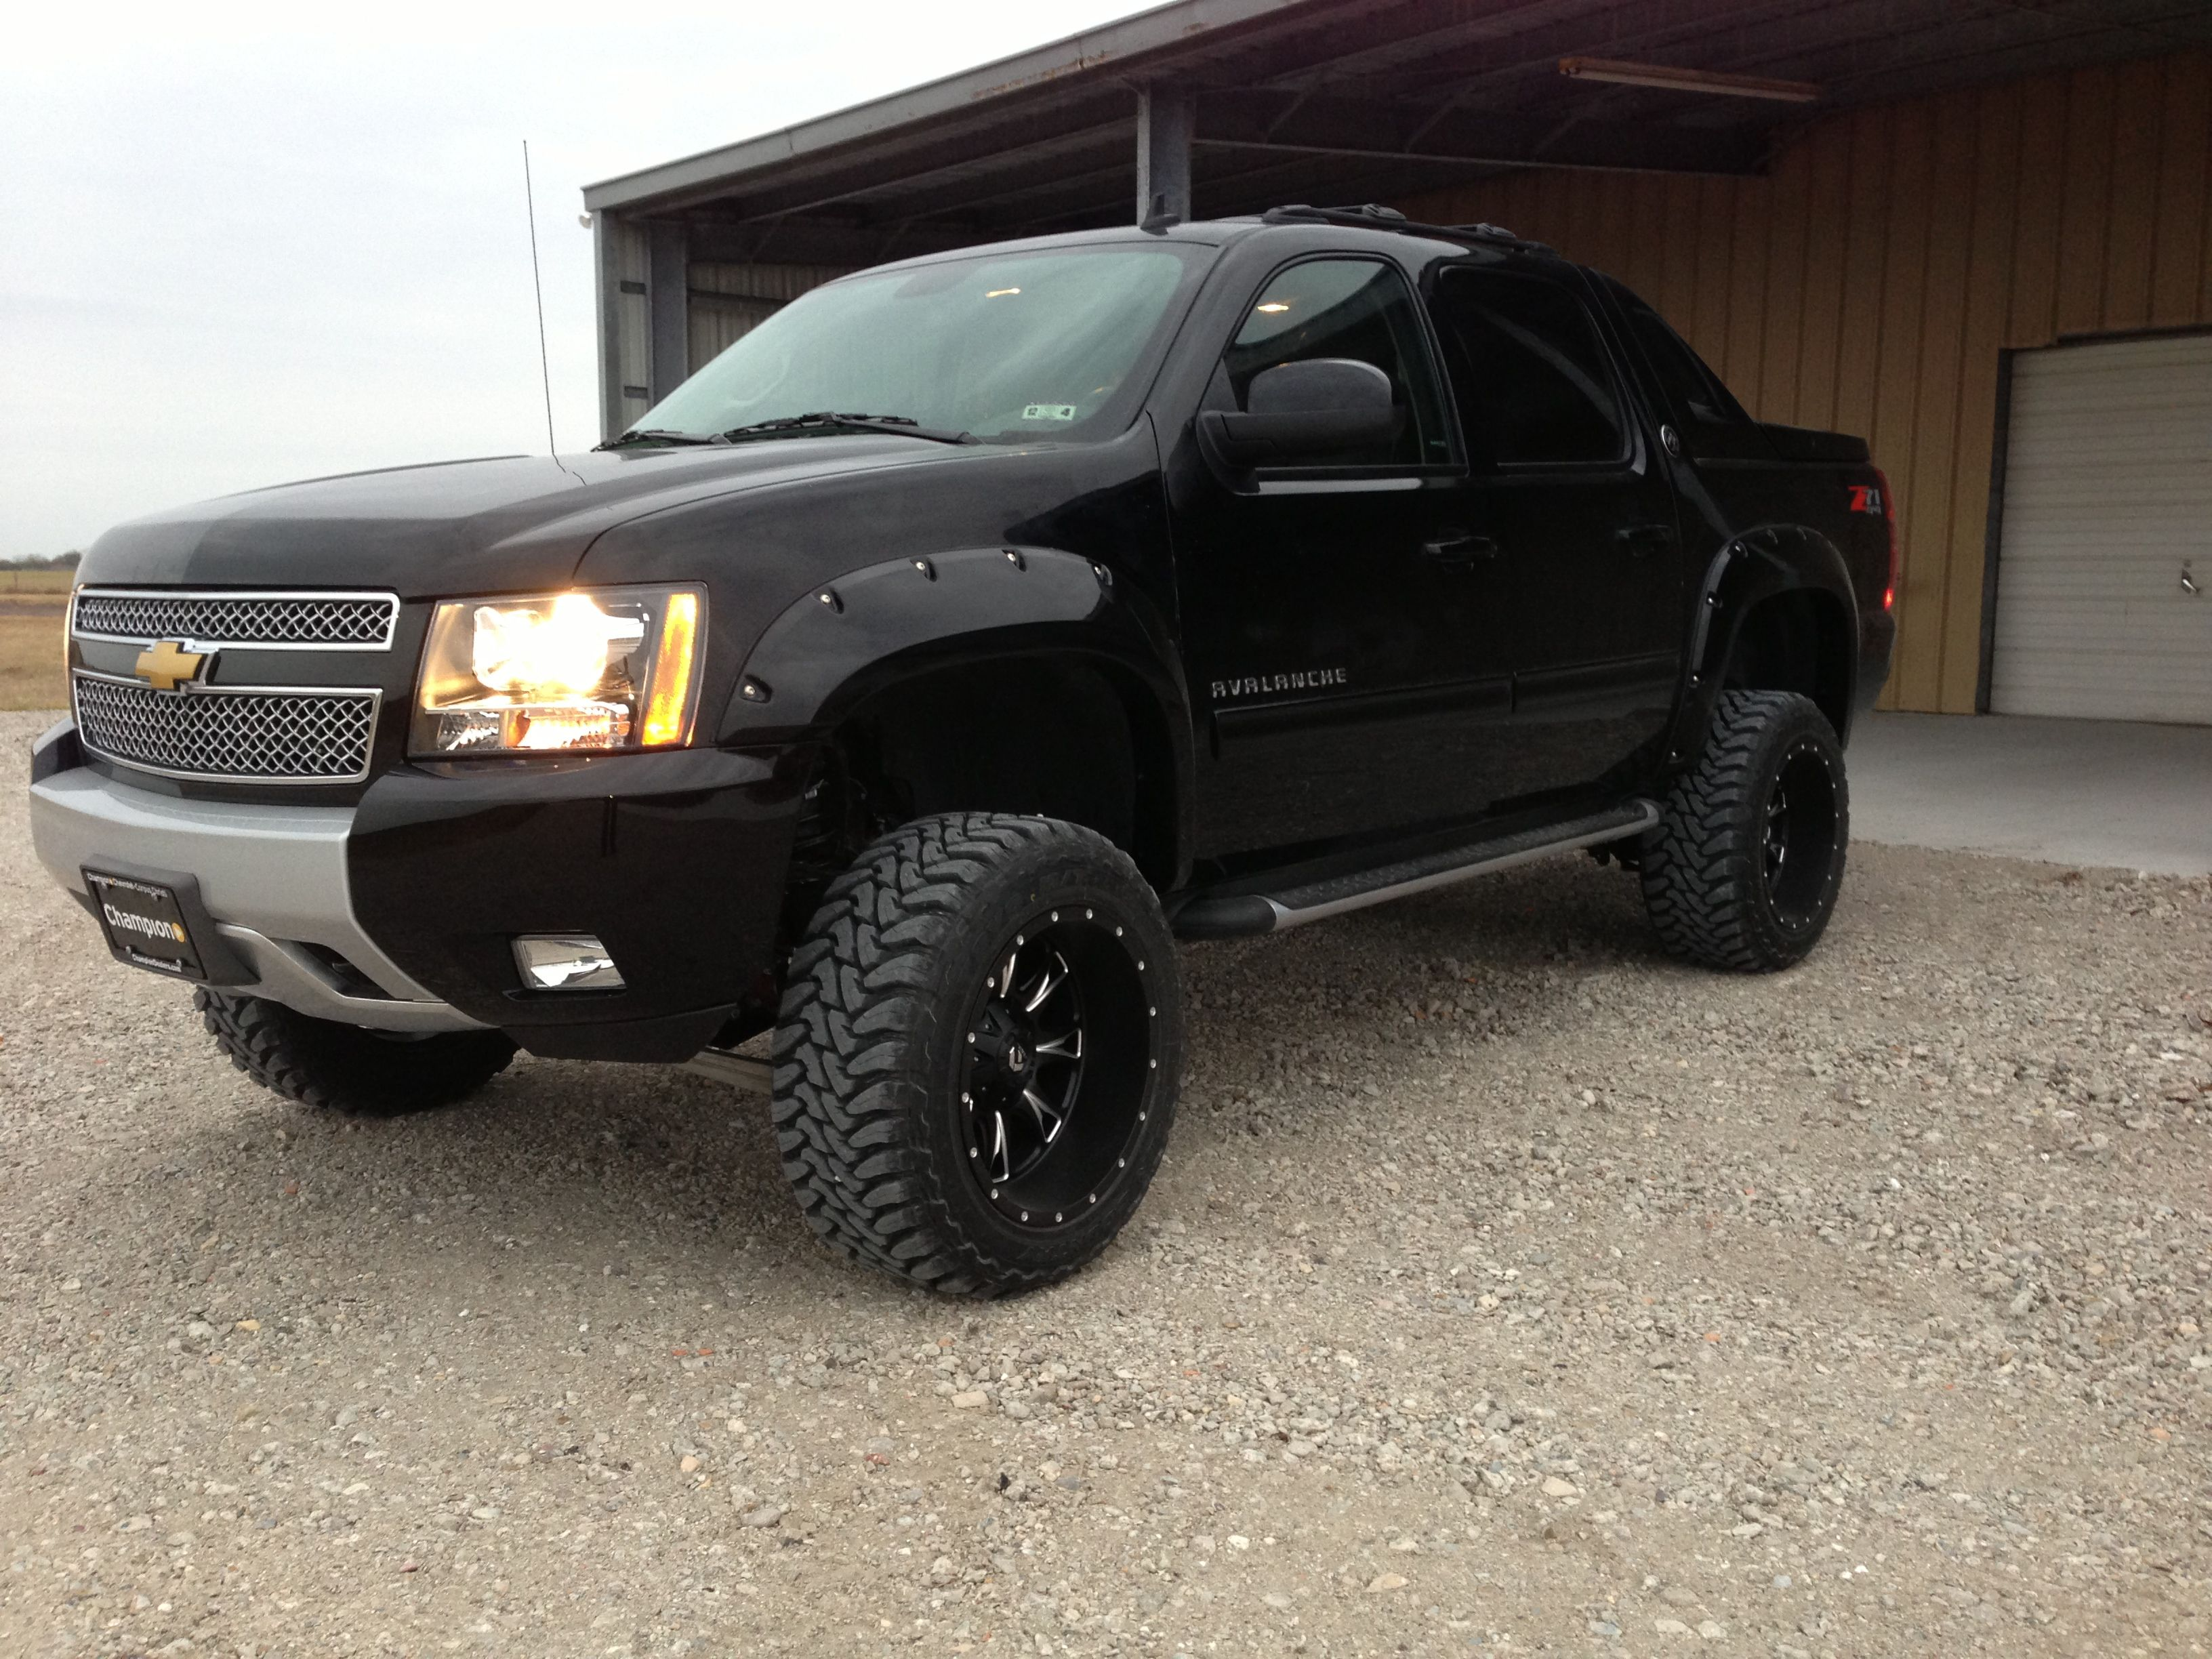 medium resolution of my 2013 avalanche with 6 bds suspension lift 33x12 5x20 toyo open country tires fuel throttle deep dish rims and matching black fender flares